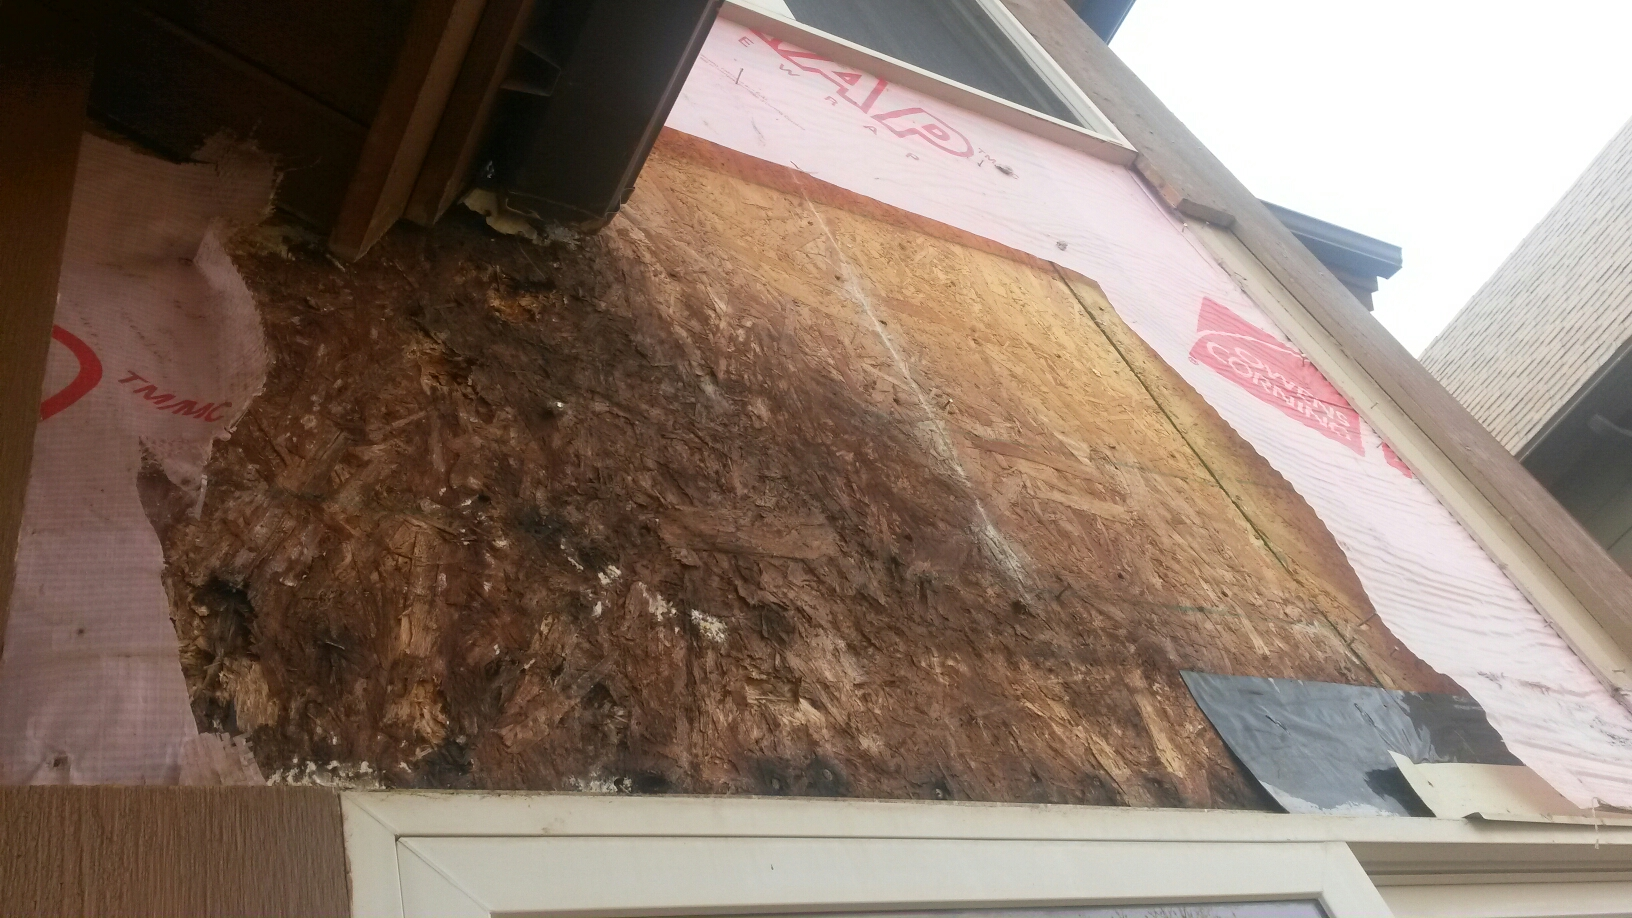 Park City, UT - Yes that is mold. The end of the rain gutter has been leaking and letting water run into the wall